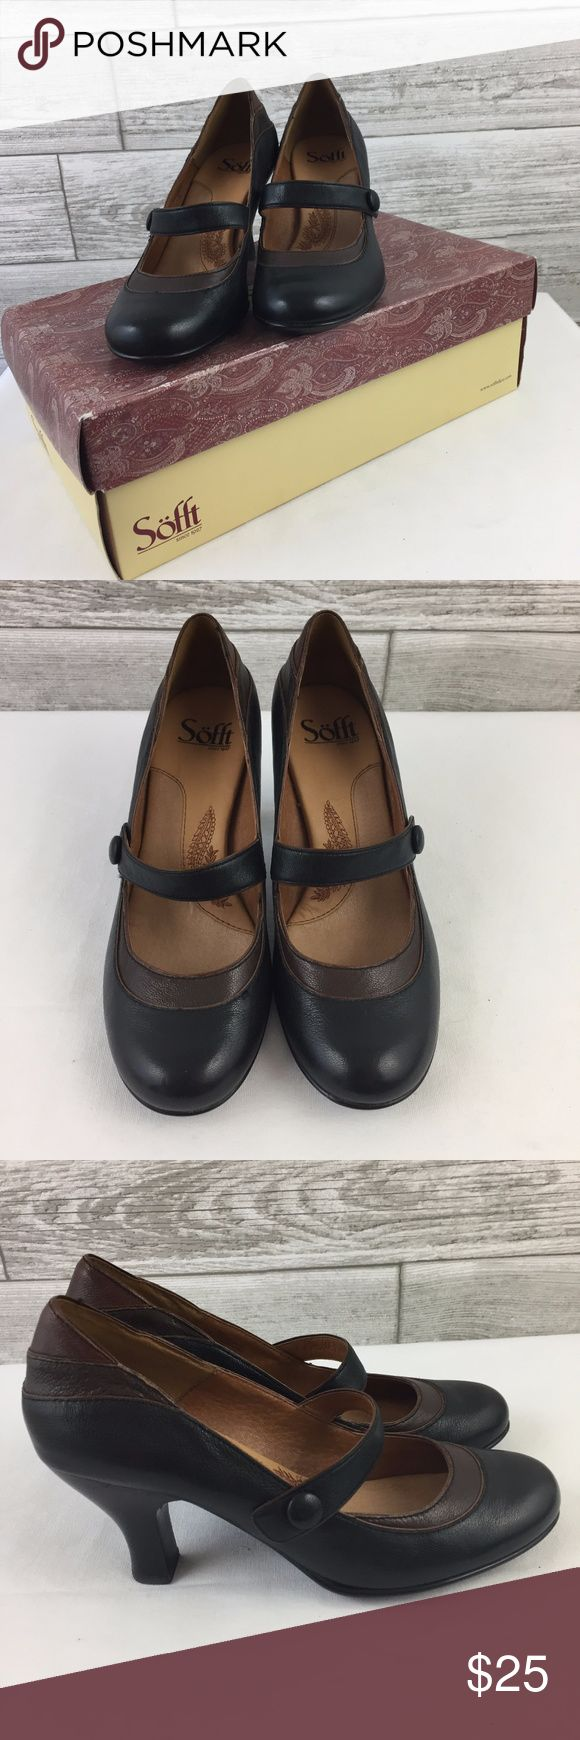 SOFFT 6.5 Mary Jane Pumps Heels Black & Brown Leat SOFFT 6.5 Mary Jane Pumps Heels Black & Brown Leather Shoes Buckle EUC w/box  Worn 1x Sofft Shoes Heels